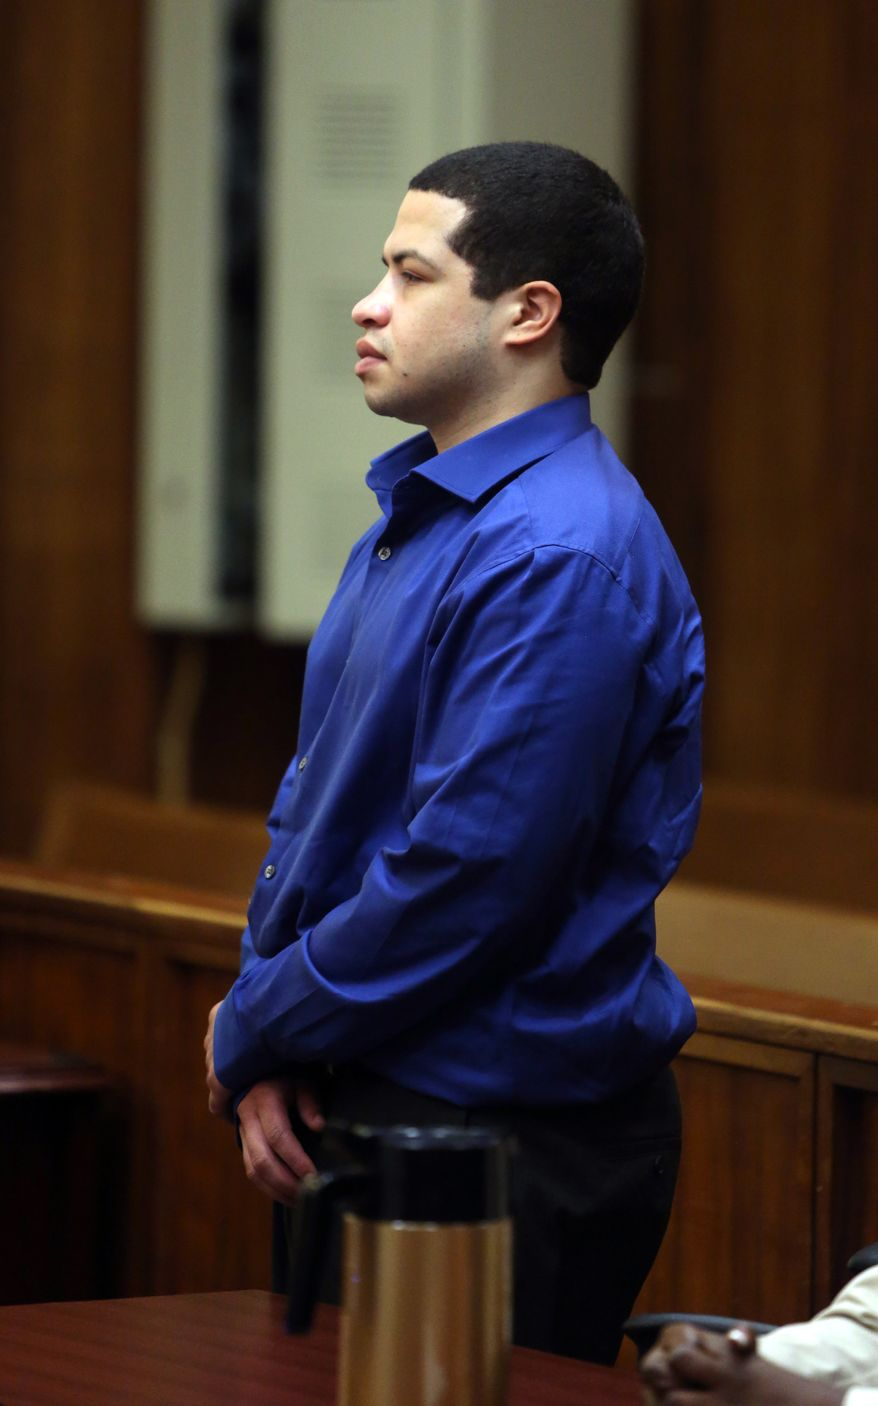 Eric Rivera Jr. appears in the courtroom on Friday, Nov. 1, 2013, in Miami. A South Florida jury resumed deliberations in Rivera's case Friday. Rivera has been charged in the fatal shooting of Washington Redskins star Sean Taylor during an ill-fated 2007 burglary. (AP Photo/The Miami Herald, Walter Michot)  MAGS OUT